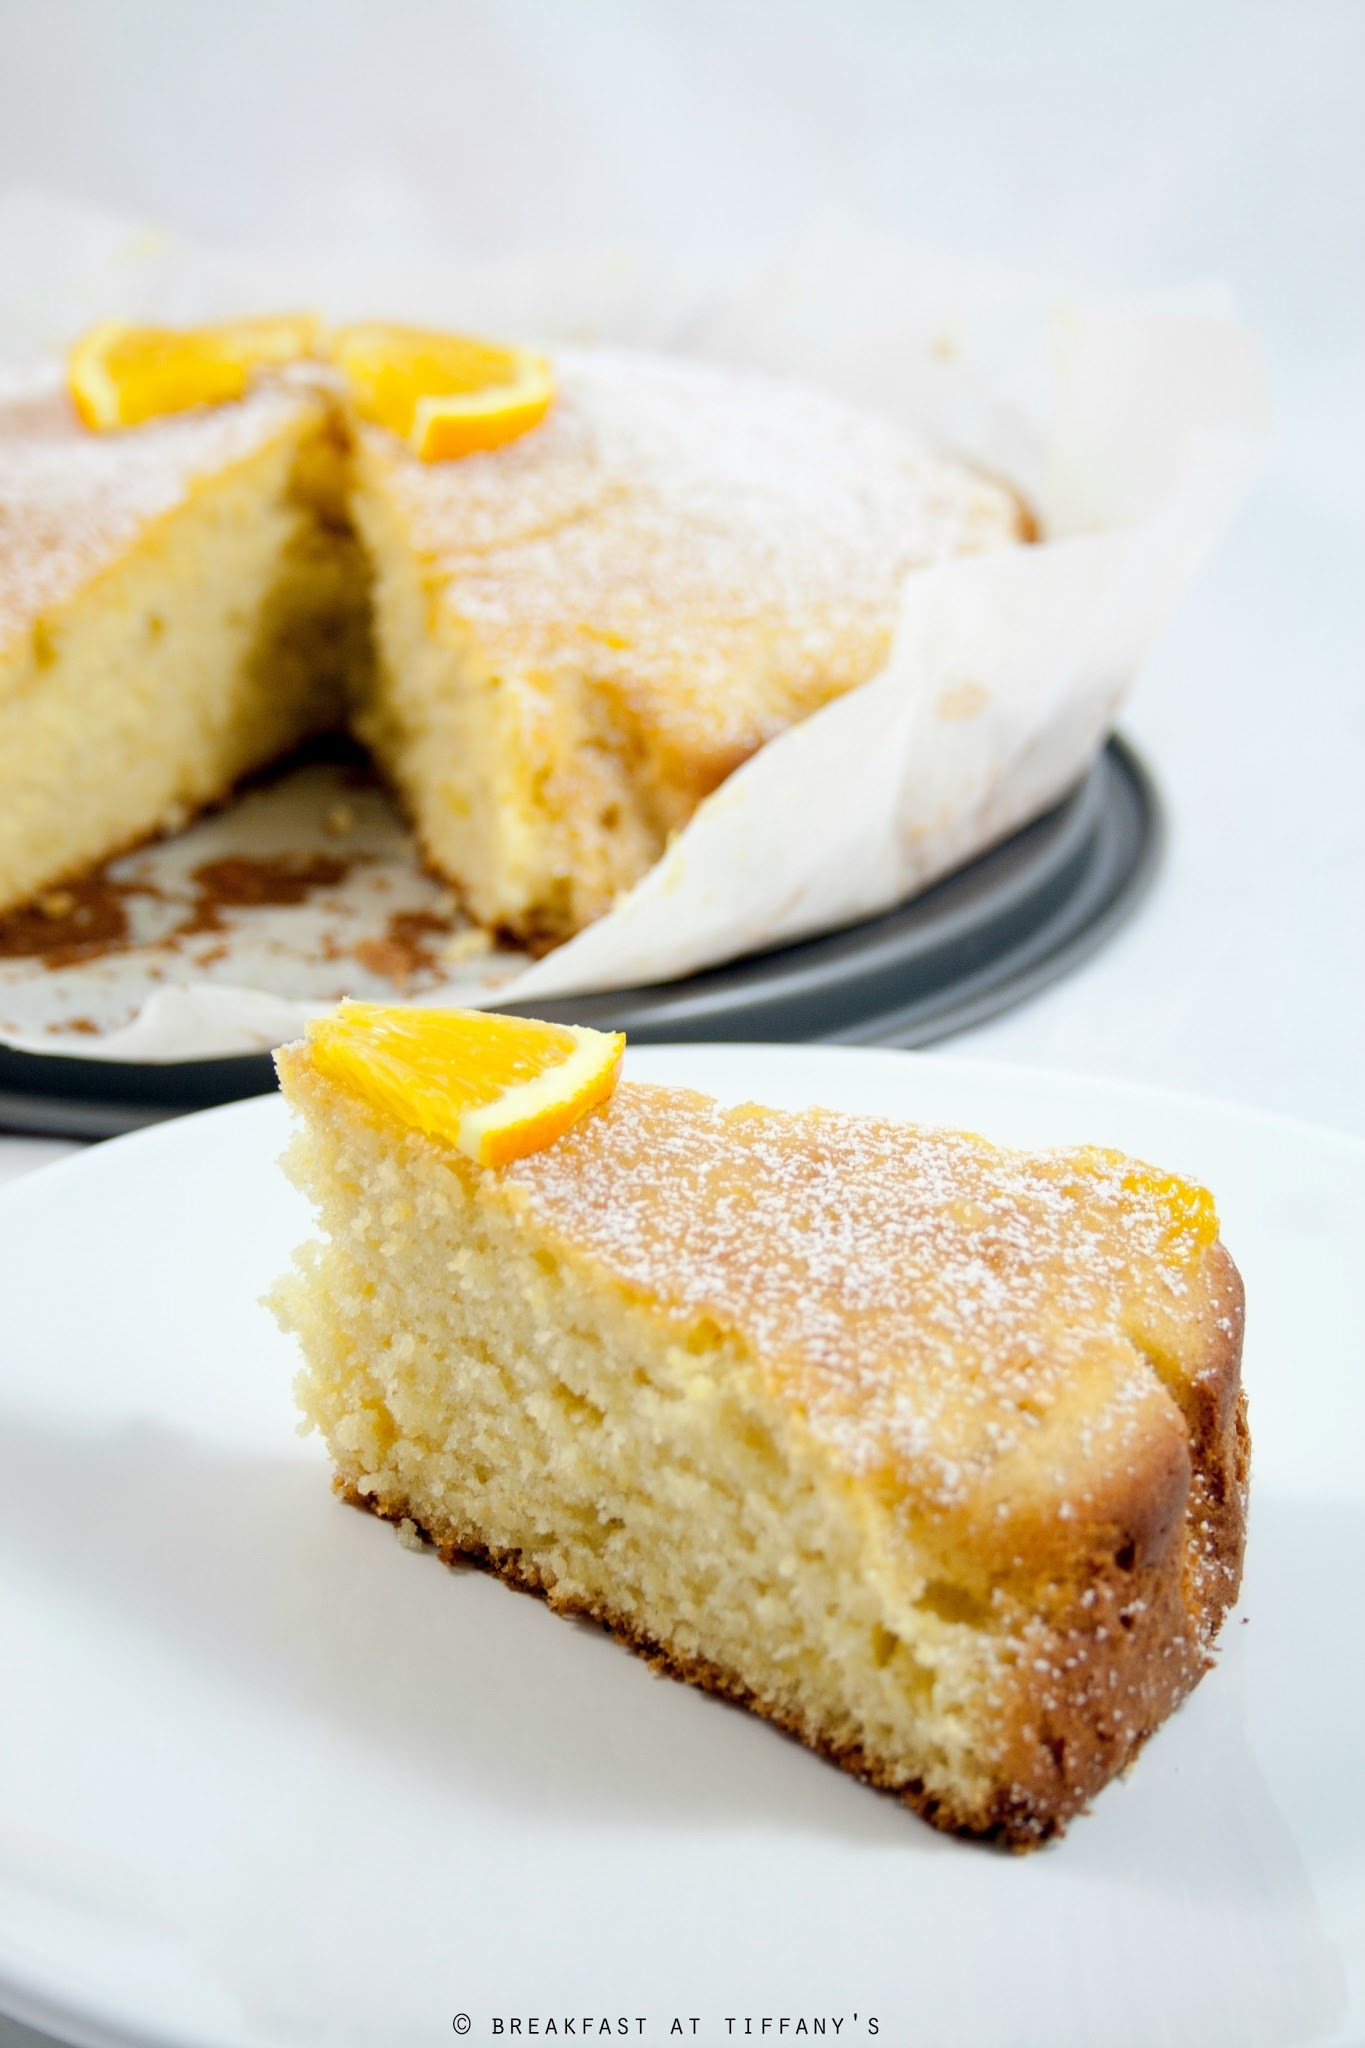 Torta all'arancia / Orange cake recipe